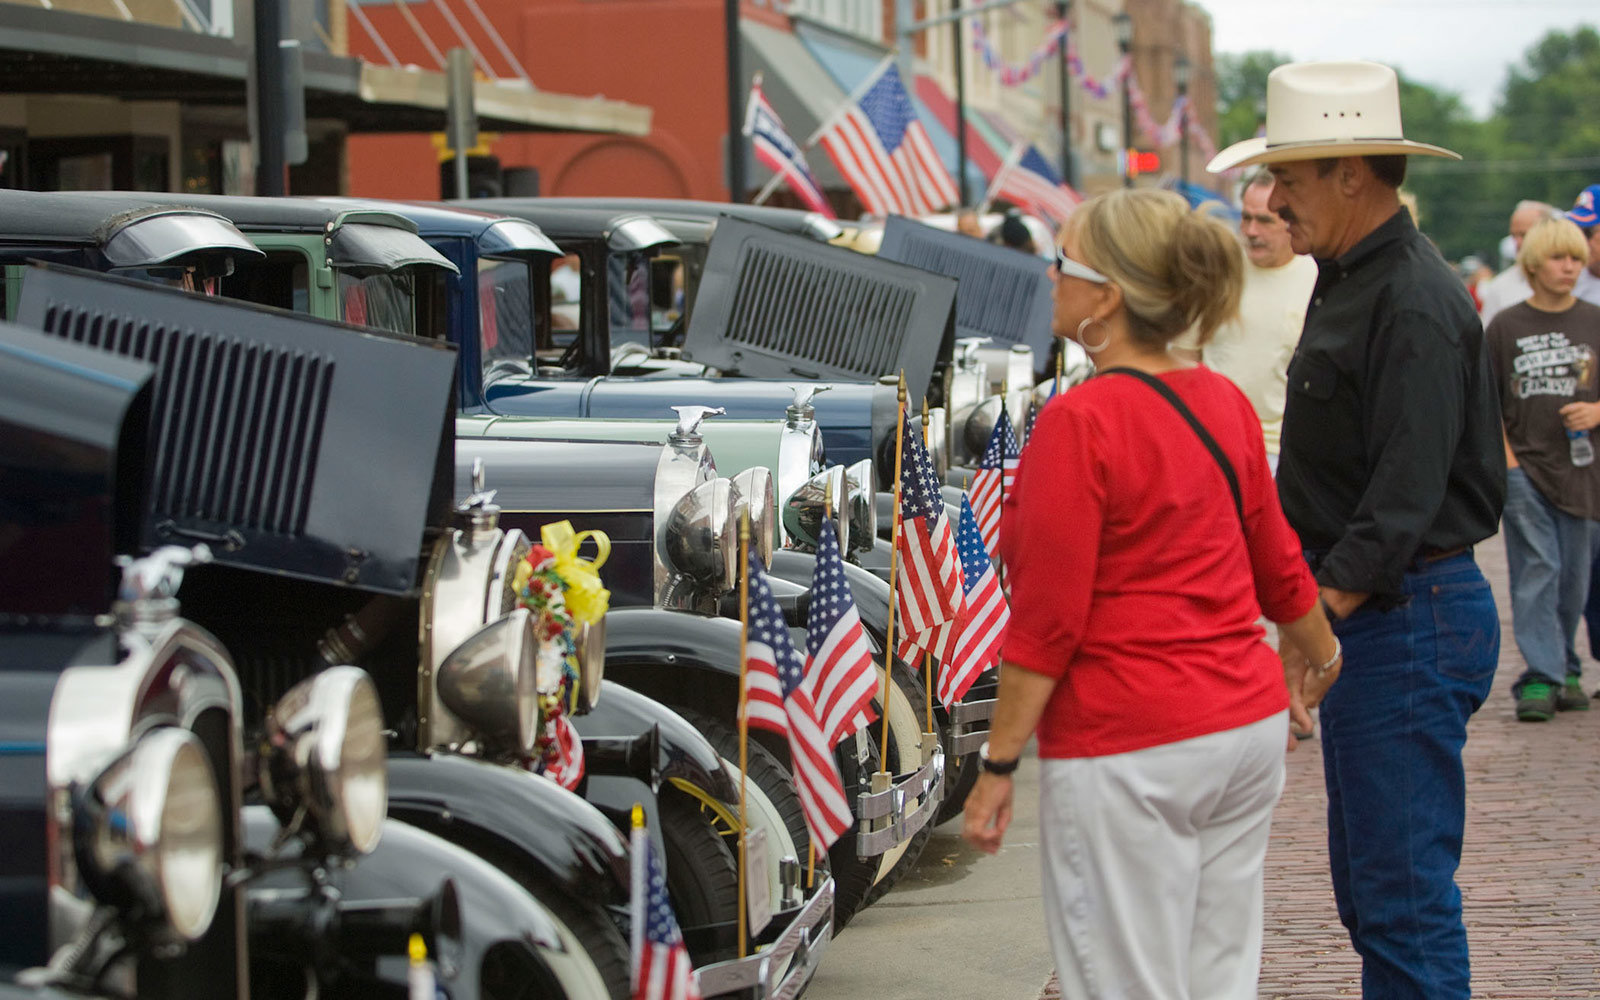 Fourth of July, Seward, Nebraska